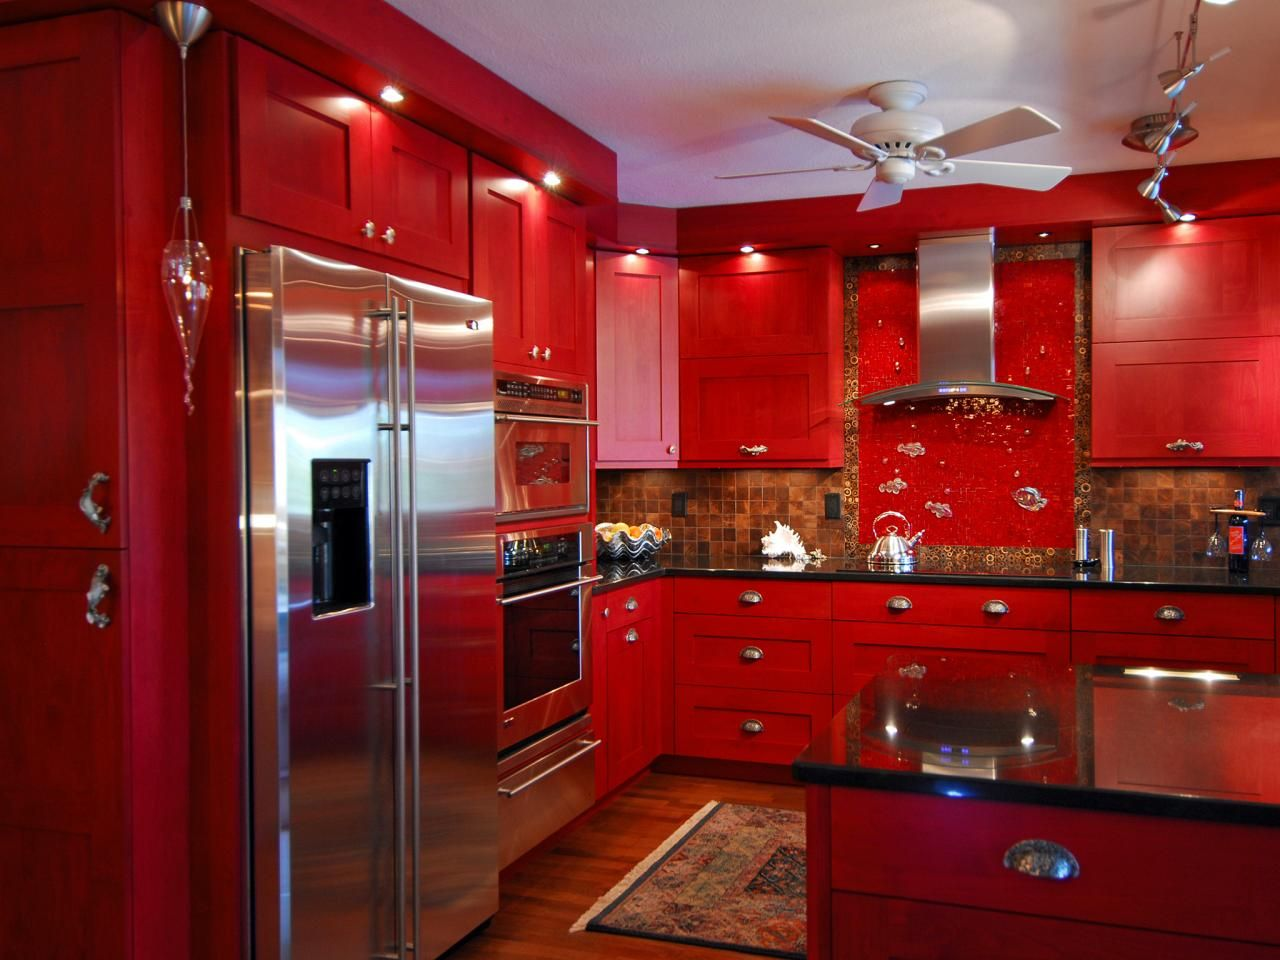 Uncategorized Red Kitchen Design 30 colorful kitchen design ideas from hgtv kitchens and with cabinets islands